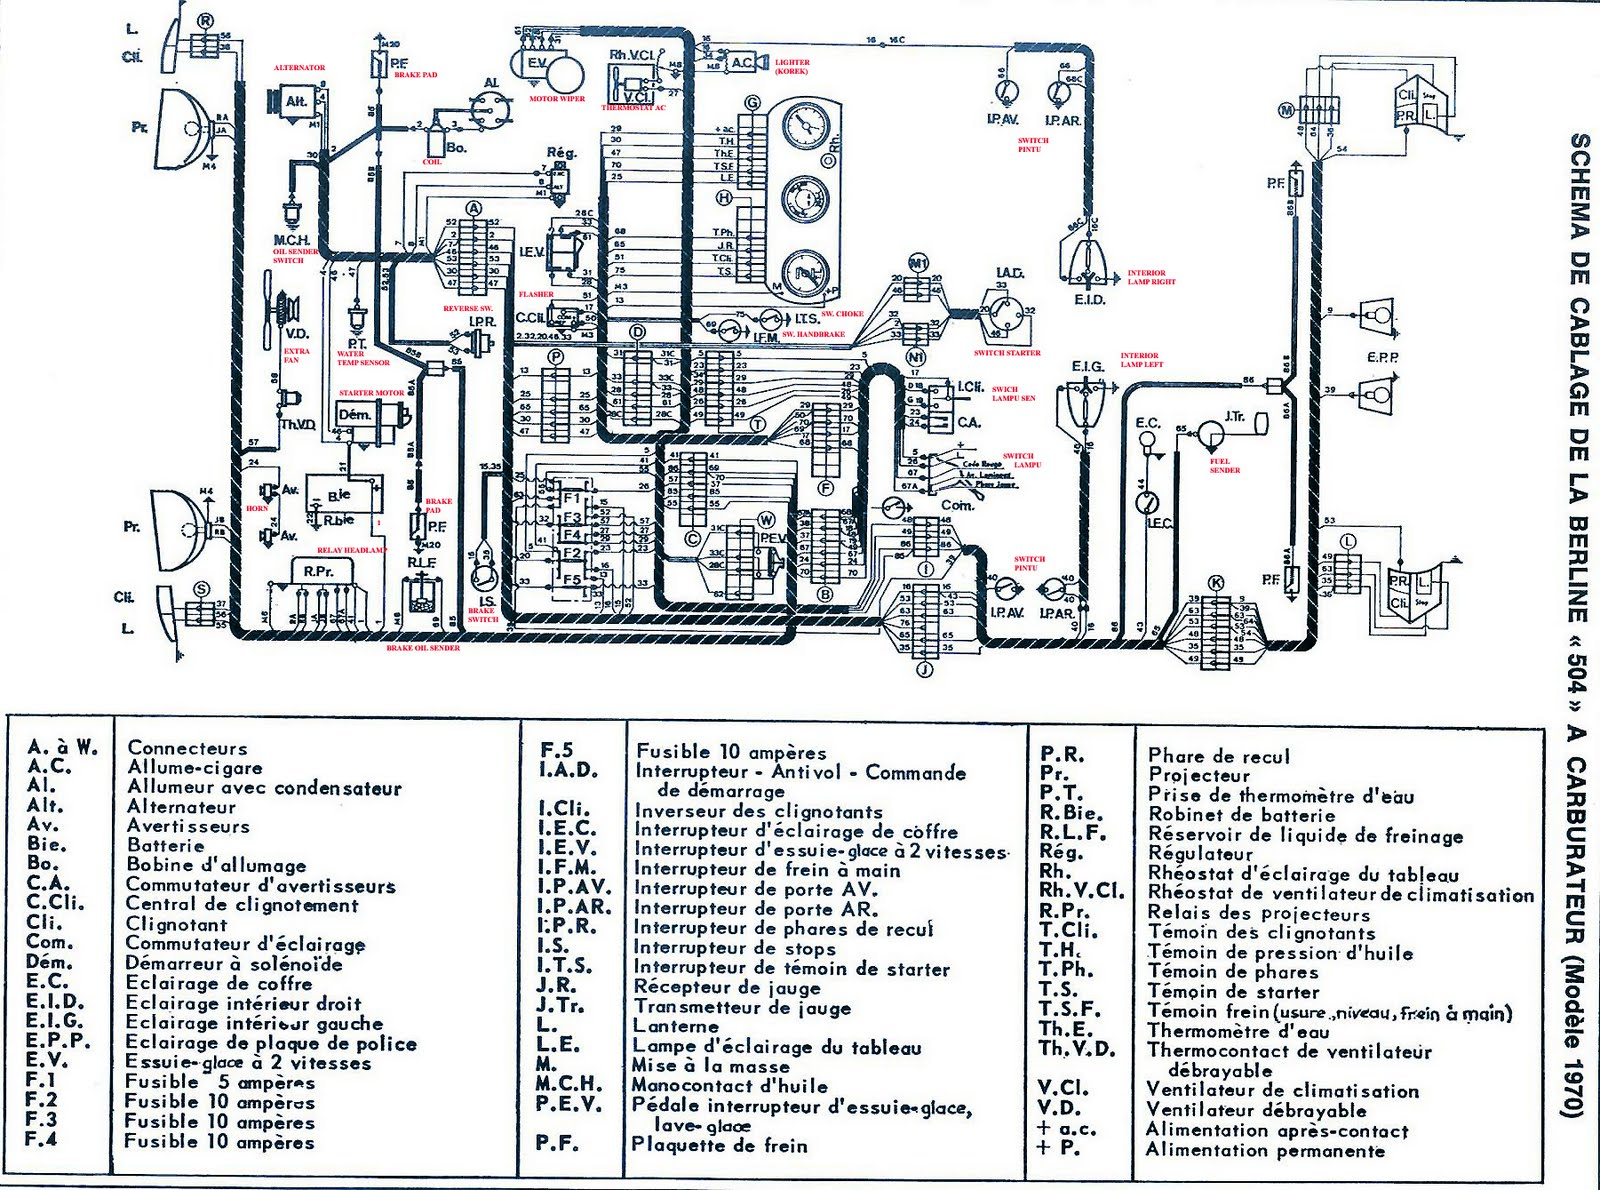 peugeot 505 wiring diagram wiring diagram expertpeugeot 505 wiring diagram wiring diagram for you peugeot 505 [ 1600 x 1190 Pixel ]